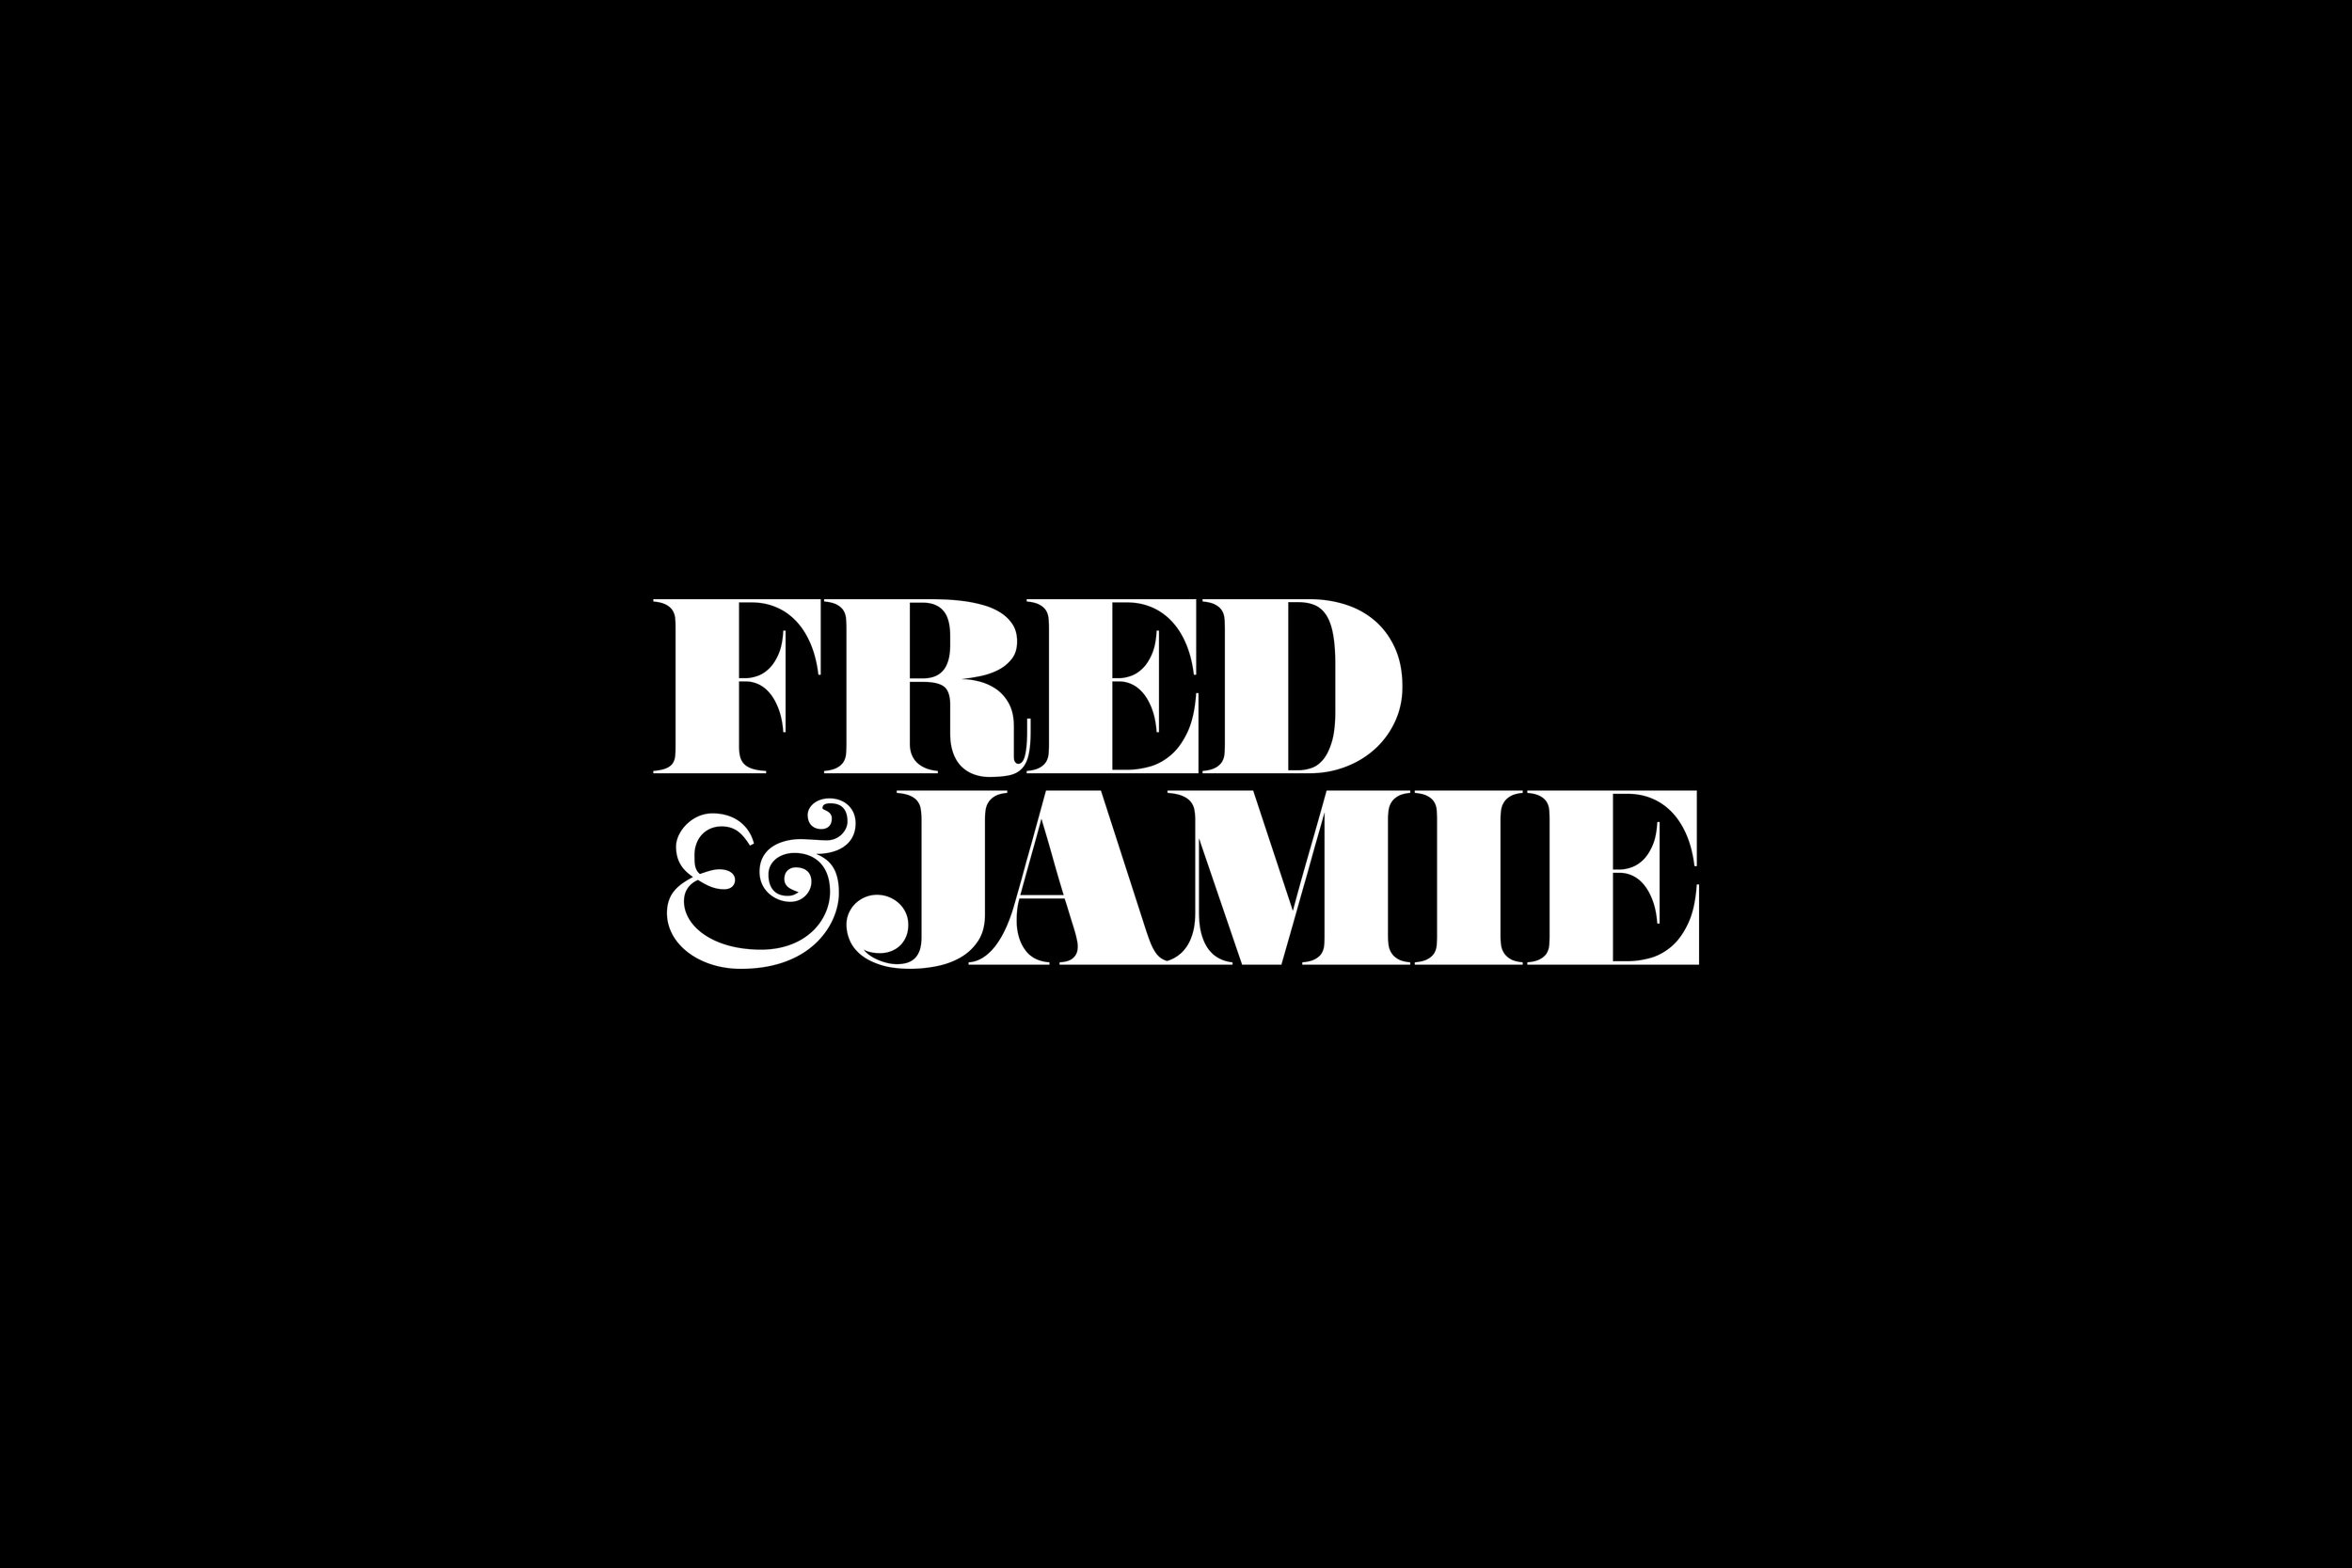 fred and jamie.jpg